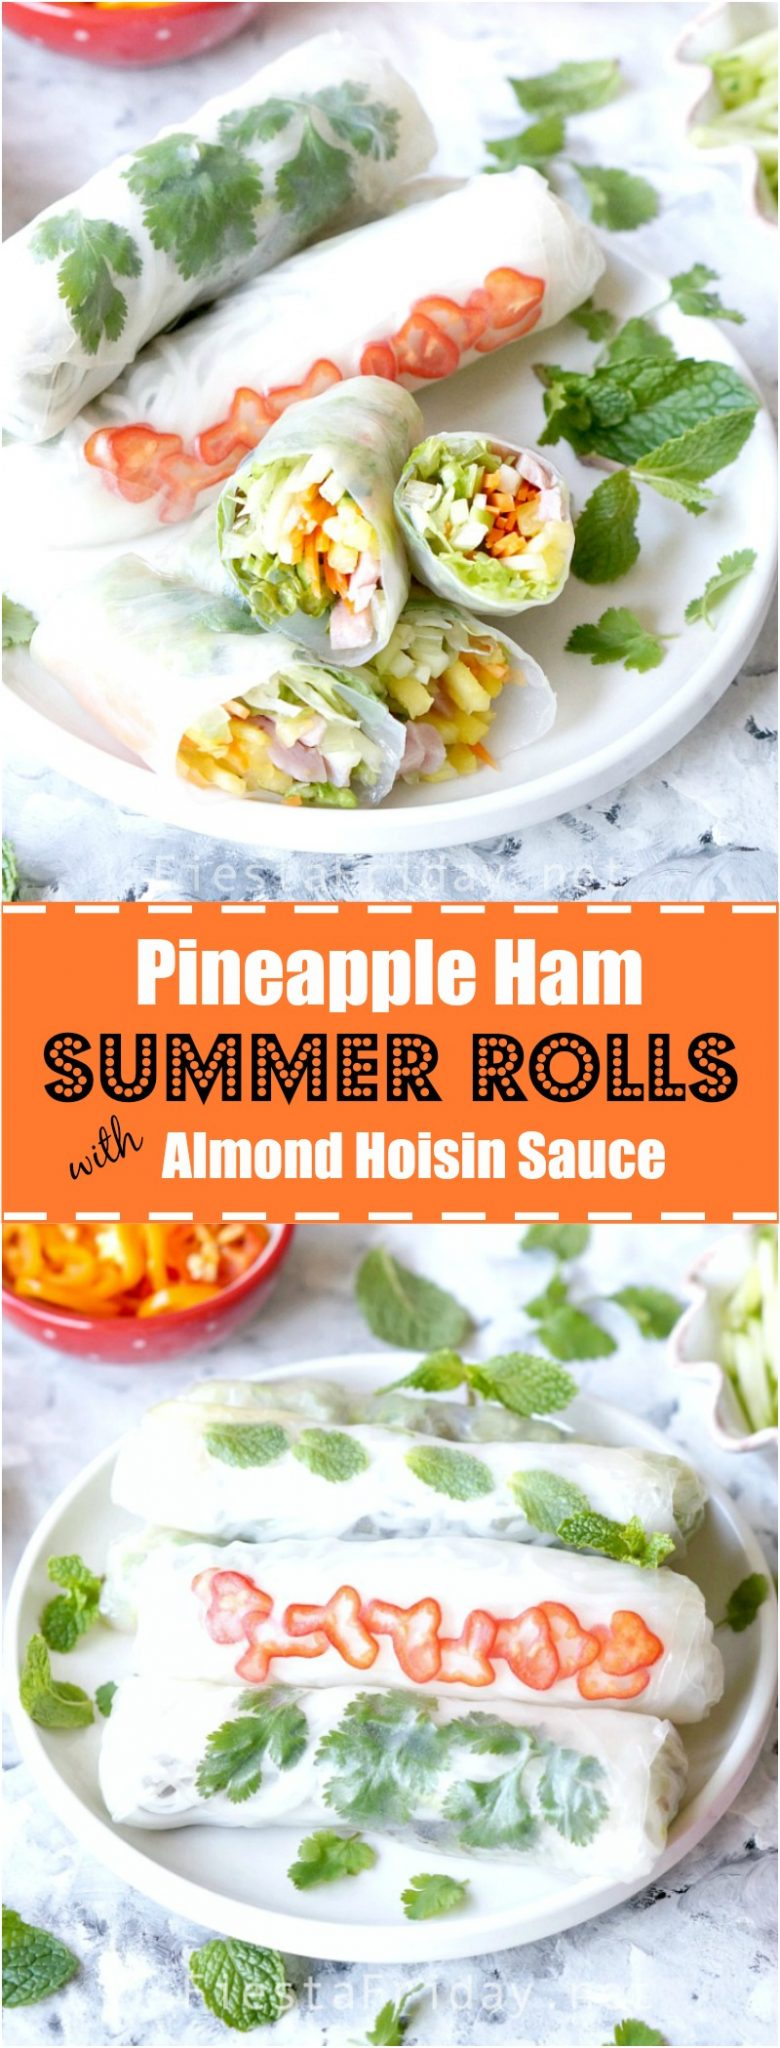 These Summer Rolls are fresh, light and healthy! Filled with pineapple, ham, fresh herbs and vegetables, they're perfect little parcels for dipping in Roasted Almond Hoisin Sauce (recipe included) | FiestaFriday.net #summerrolls #vietnamesefood #hoisinsauce #pineapplerecipe